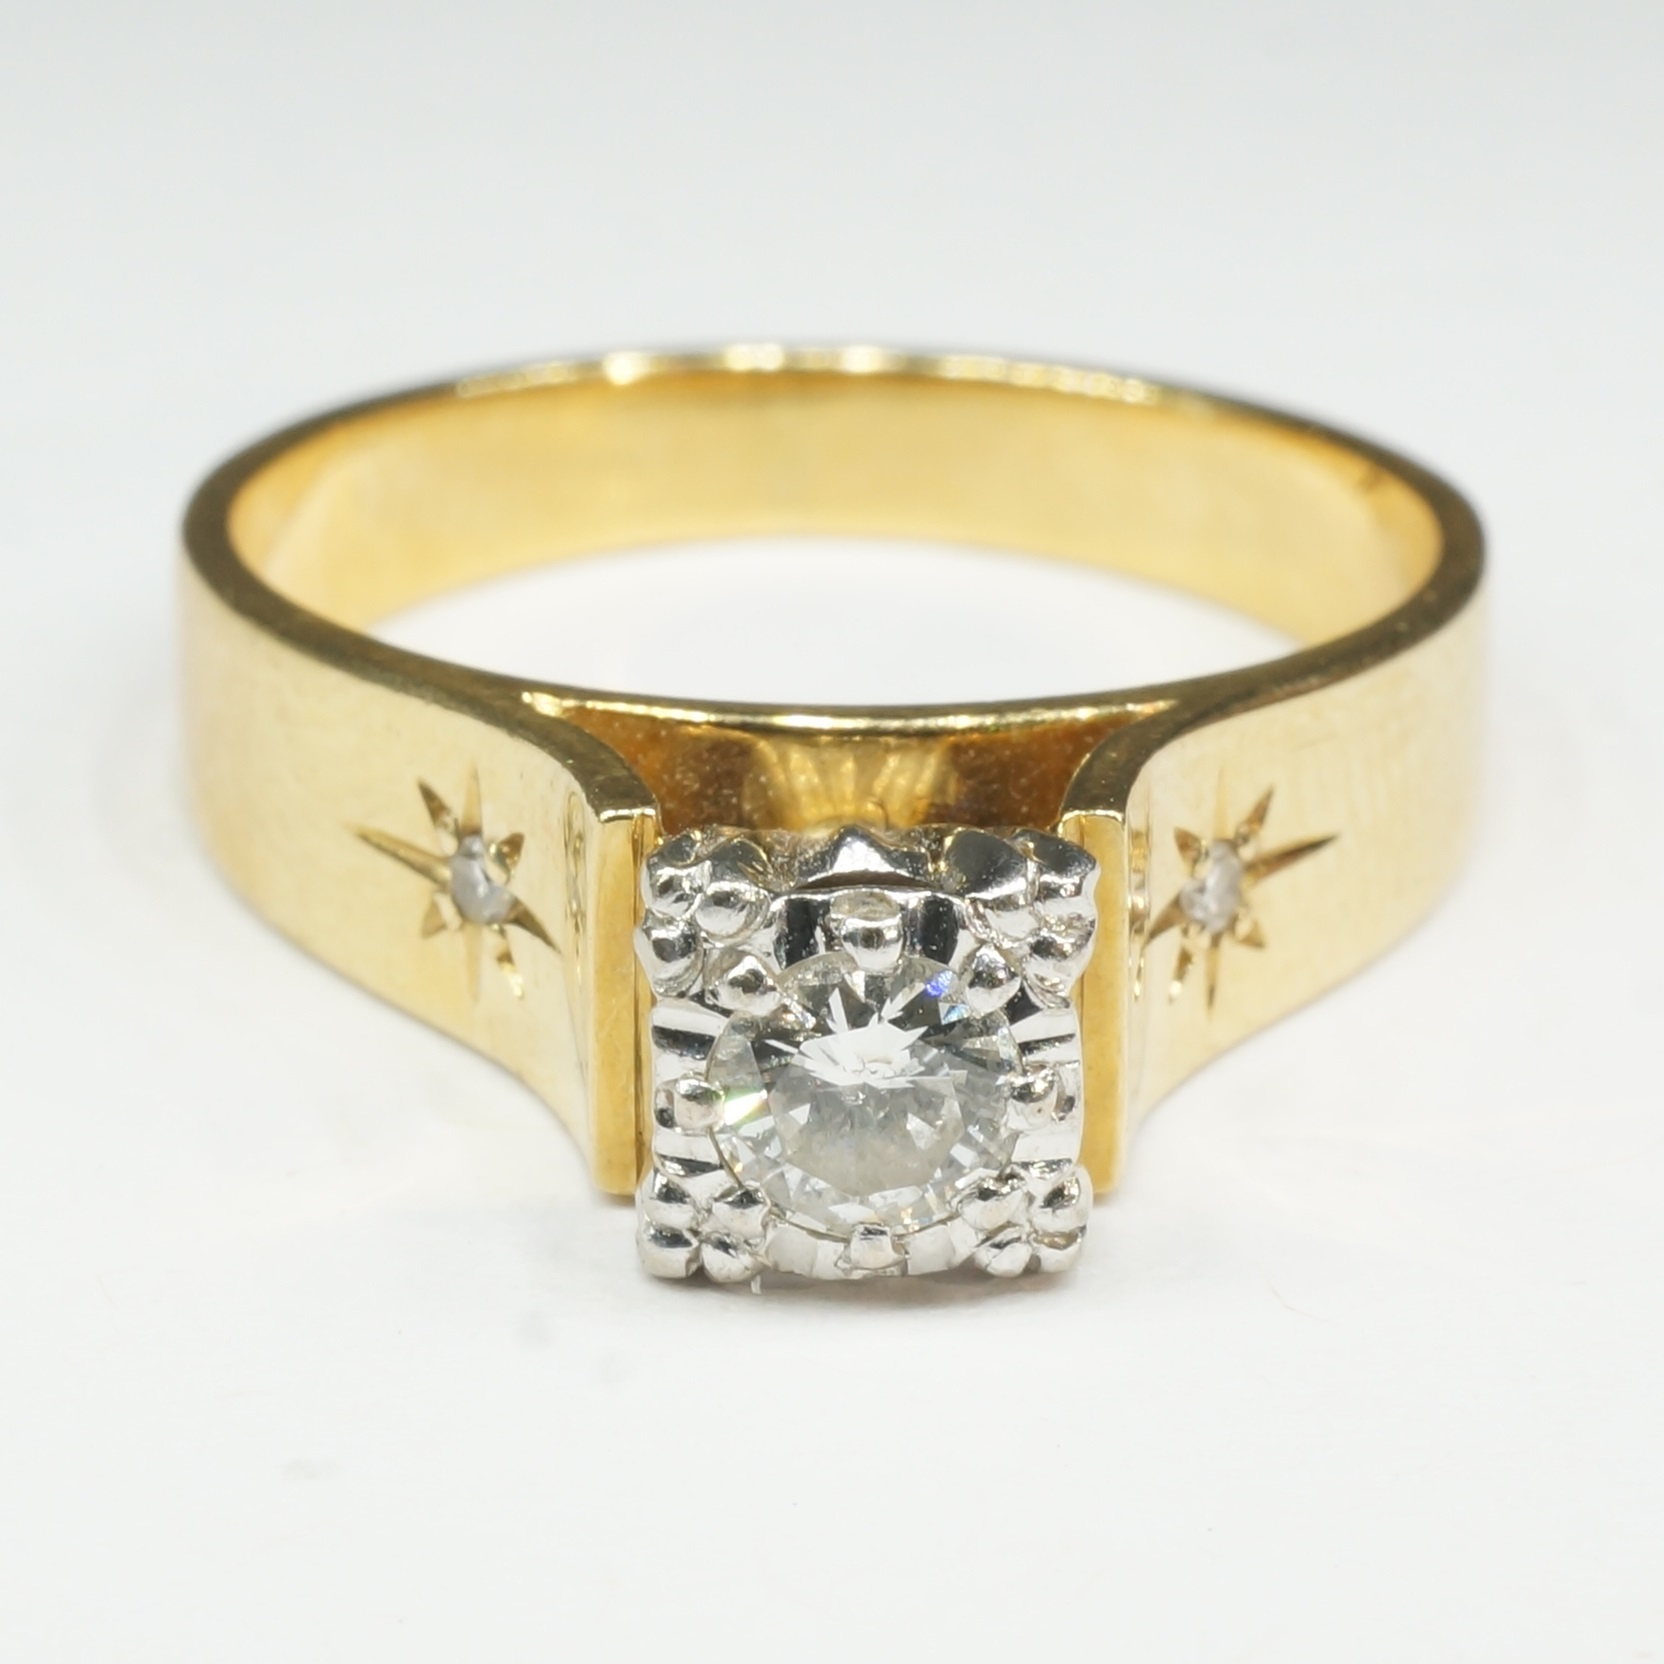 '18ct Yellow Gold with Platinum Settings Diamond Engagement Ring'